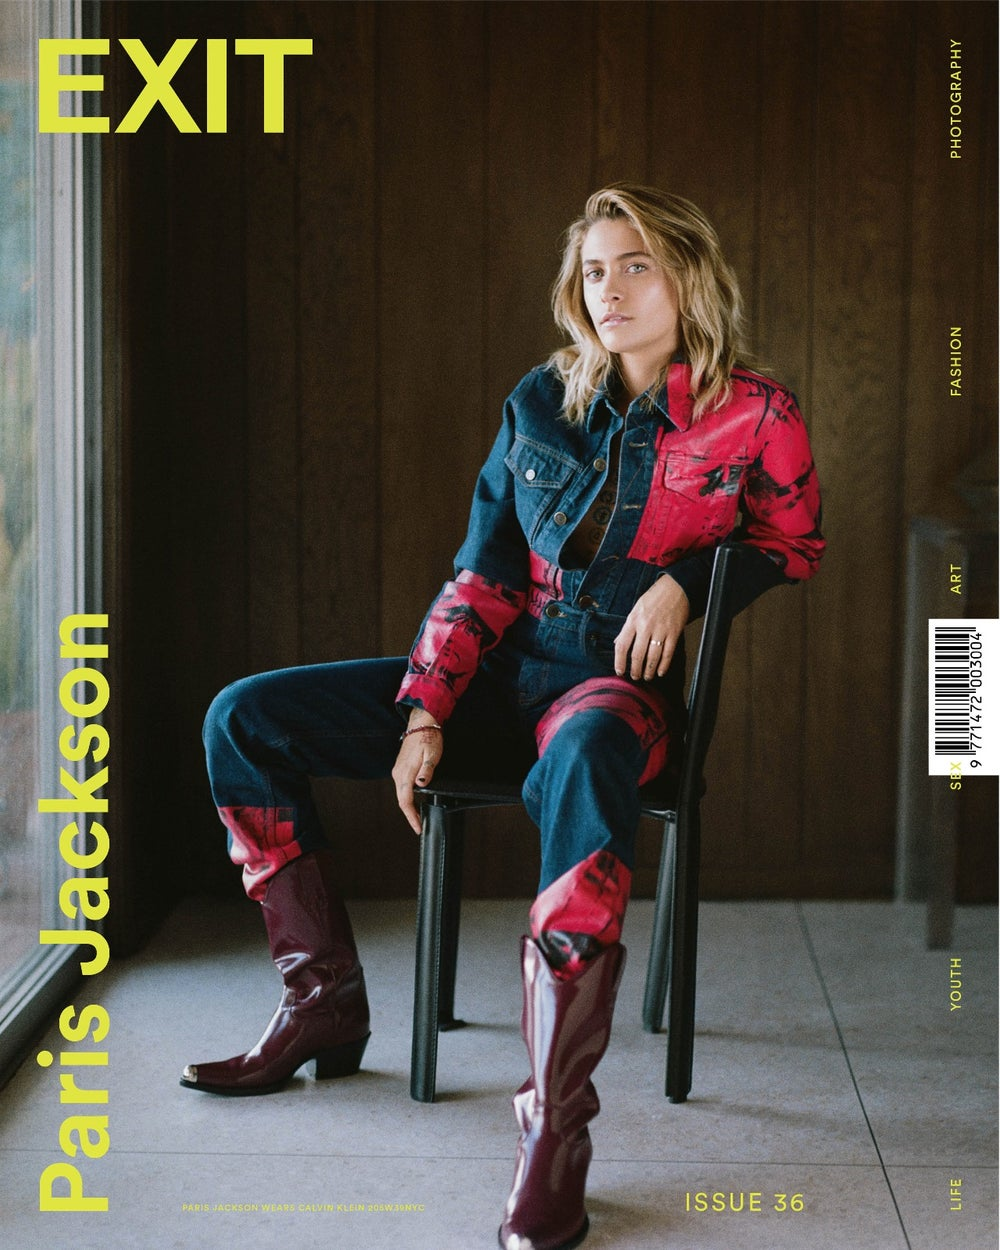 Image of EXIT ISSUE 36 SPRING SUMMER 2018 PARIS JACKSON COVER ***SOLD OUT***